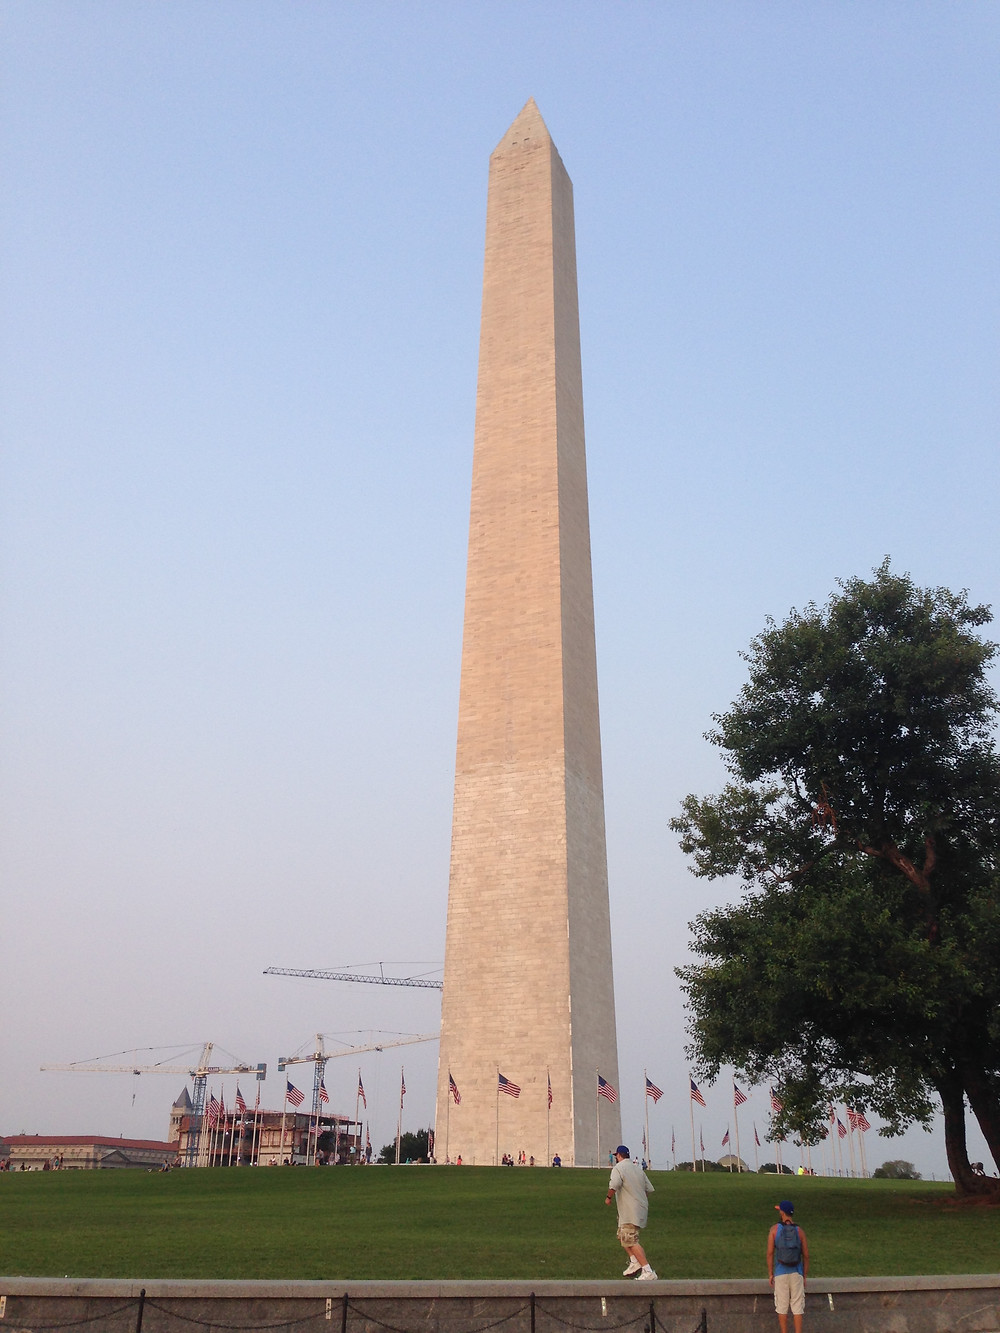 Escape Reno: A Visit to the Top of the Washington Monument